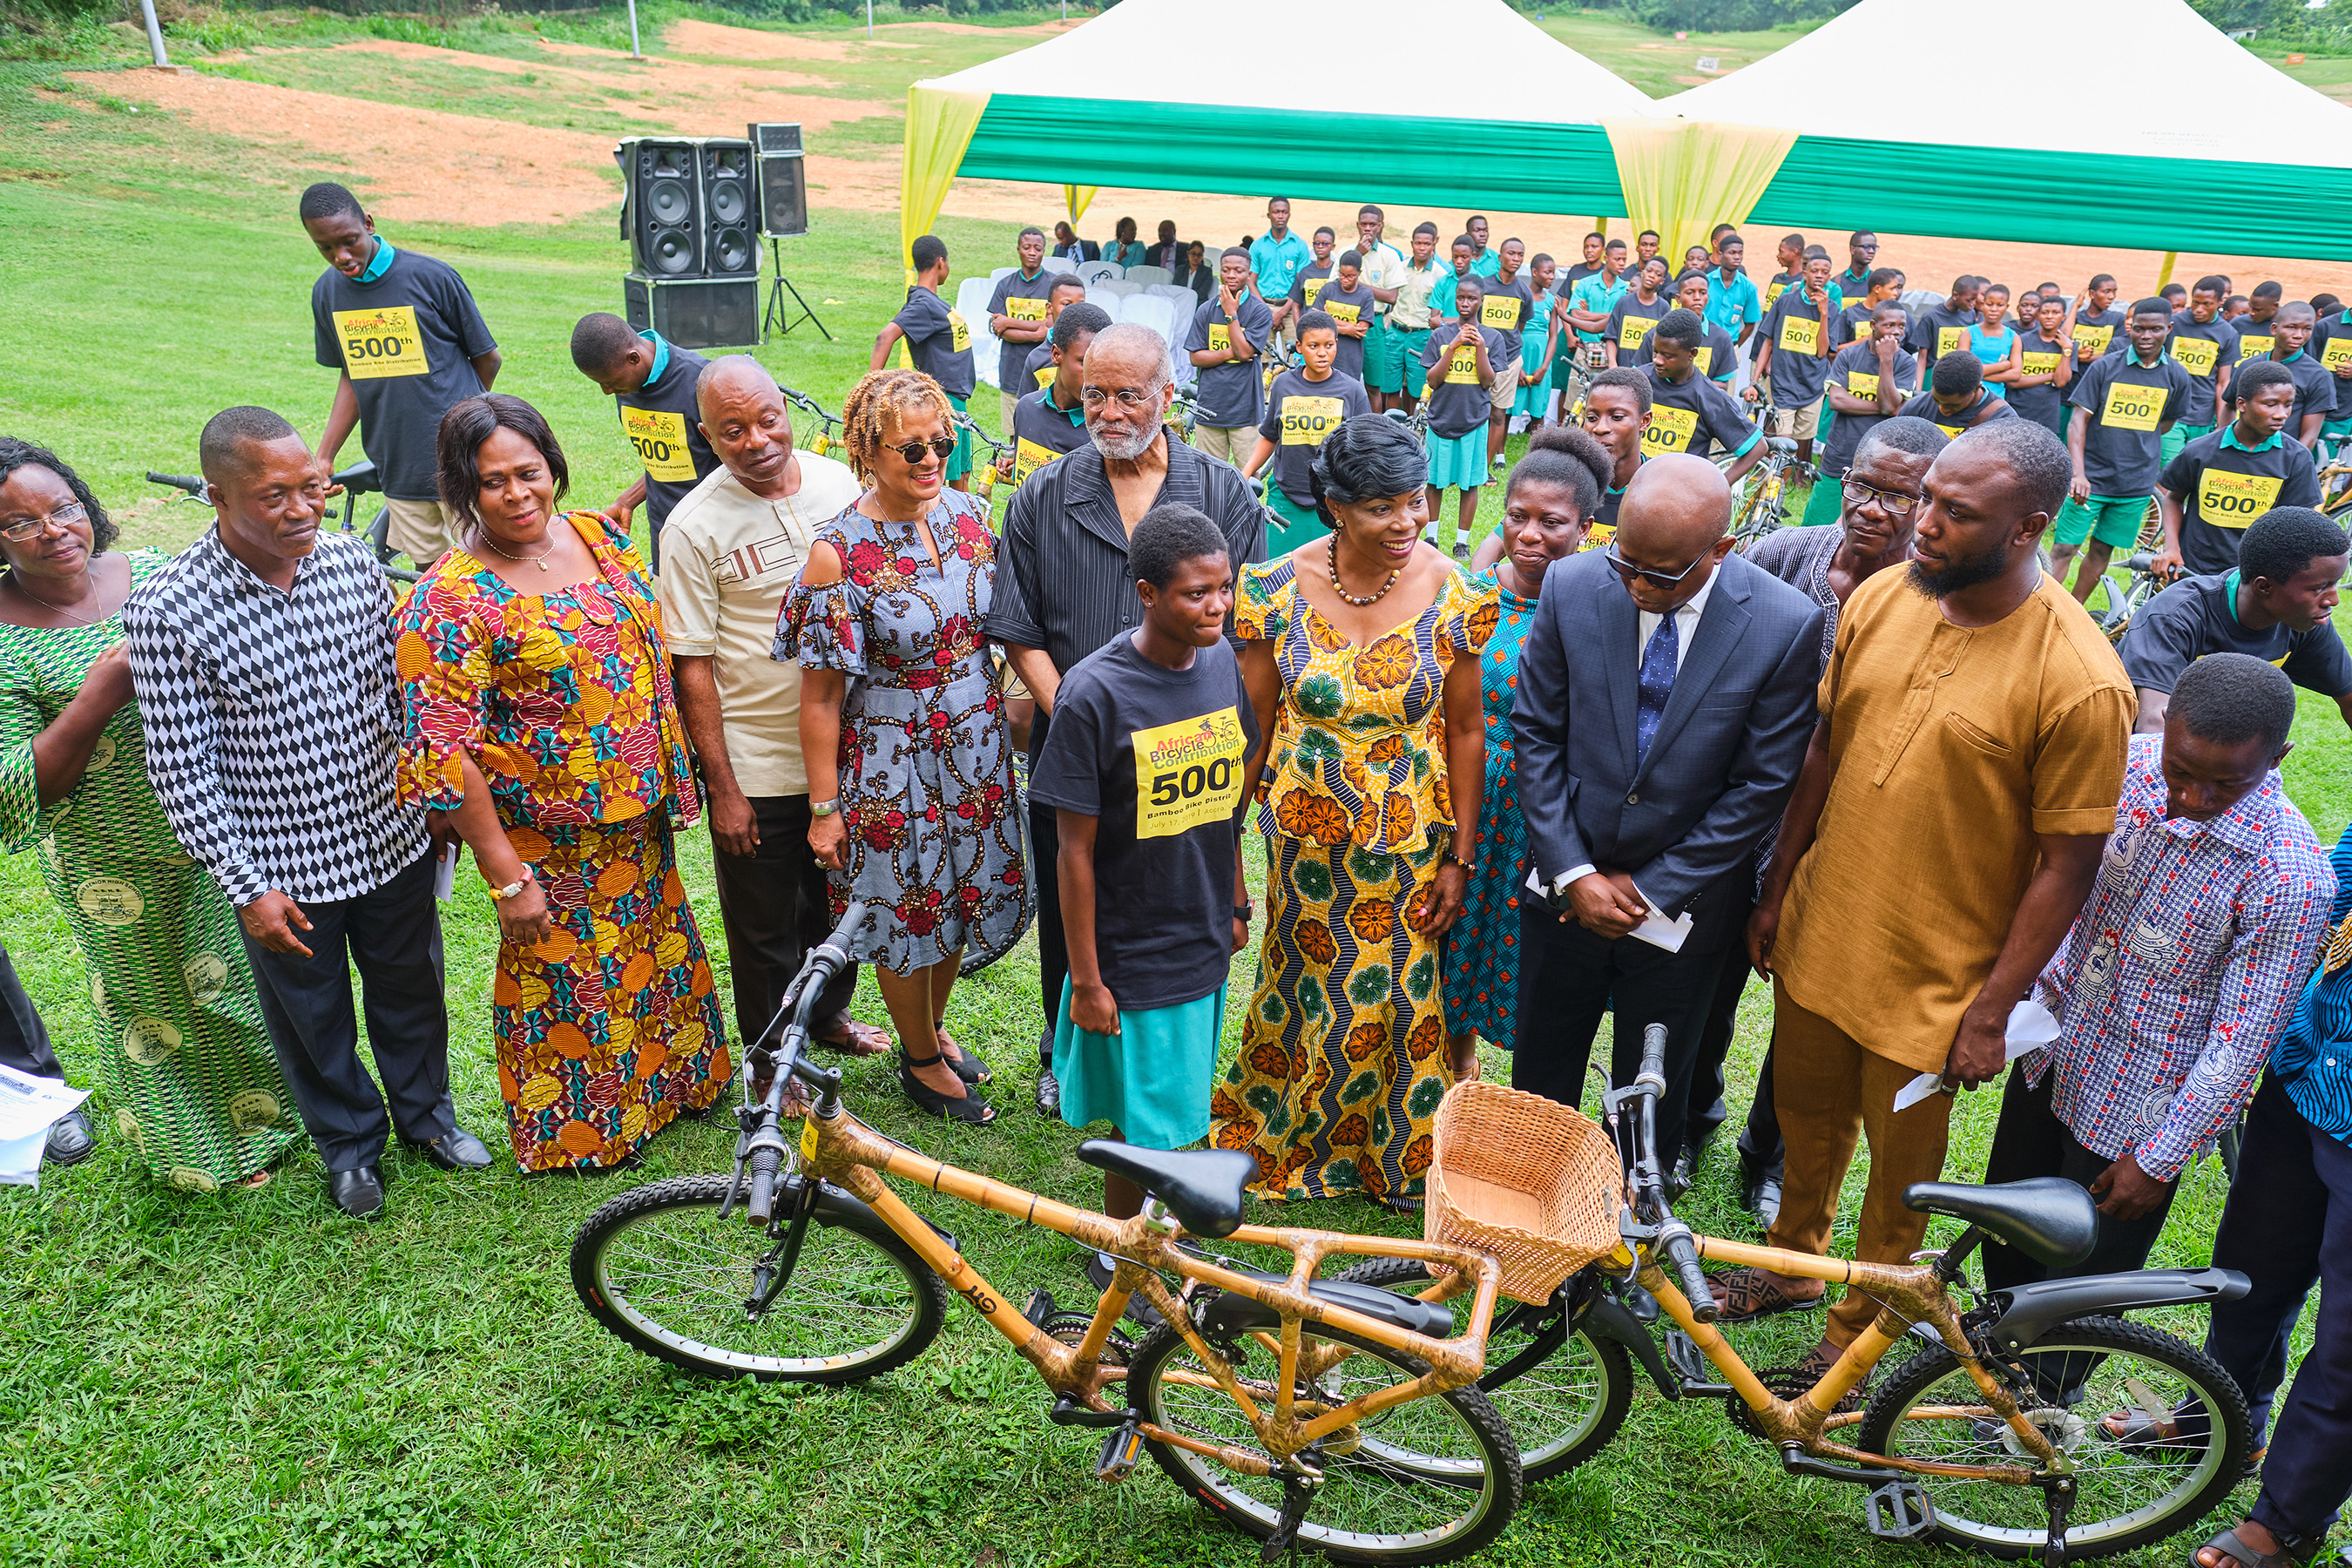 """ABCF's """"500th Bicycle"""" event speakers present bamboo bicycles to individual students, recently, in Accra. Speakers included: Mr Daniel Lawer Agudey, head teacher, Ningo Senior High School (Second from left); Ms Beatrix Ollenu, Ningo-Prampram School District Director of Education (third from left); Mr Peter Djan, Head teacher, Prampram Senior High School (fourth from left); Ms Patricia Marshall Harris, executive director, ABCF (fifth from left); Mr A.Bruce Crawley, chairman, ABCF (sixth from left); Hon. Elizabeth K. T. Sackey, Deputy Regional Minister, Greater Accra (center); and Mr. Carl Nelson, COO, Ghana Investment Promotion Centre (third from right), with bamboo bicycle recipient."""